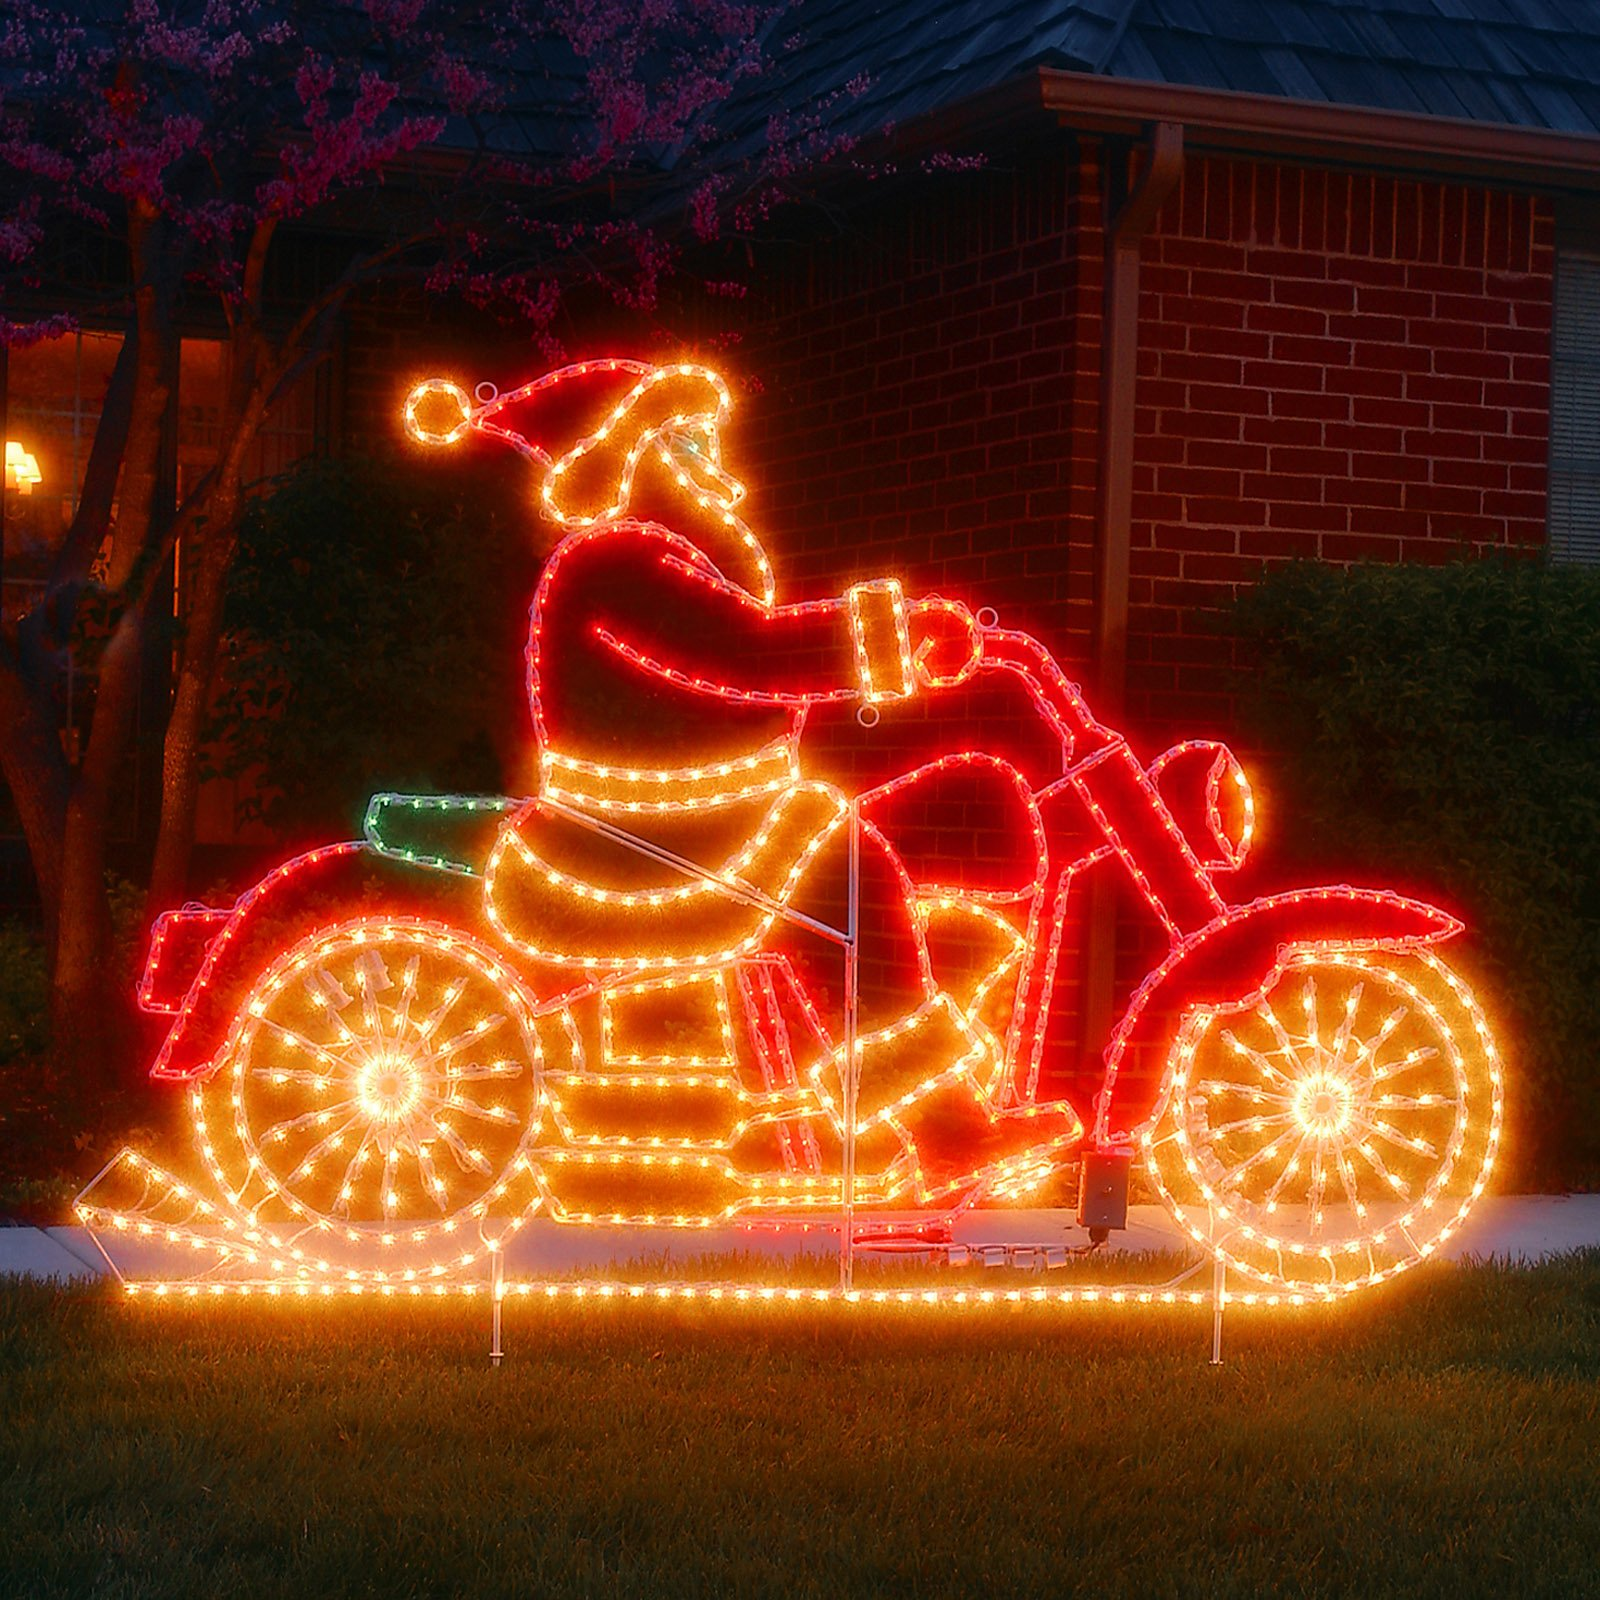 Harley Davidson Christmas Decorations